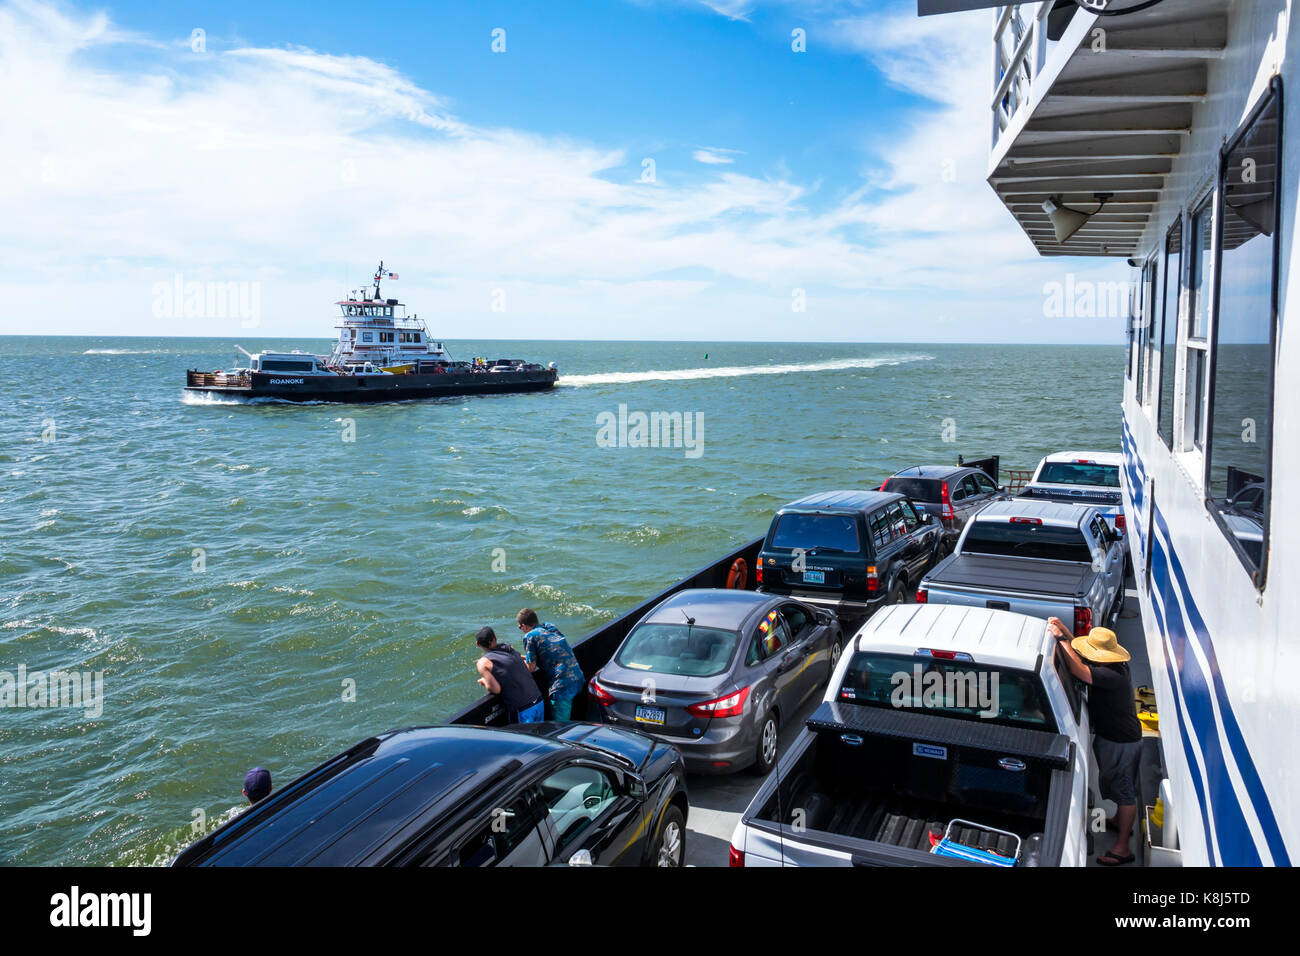 Outer Banks North Carolina NC Pamlico Sound Ocracoke Island Hatteras ferry boat water cars vehicles waves - Stock Image